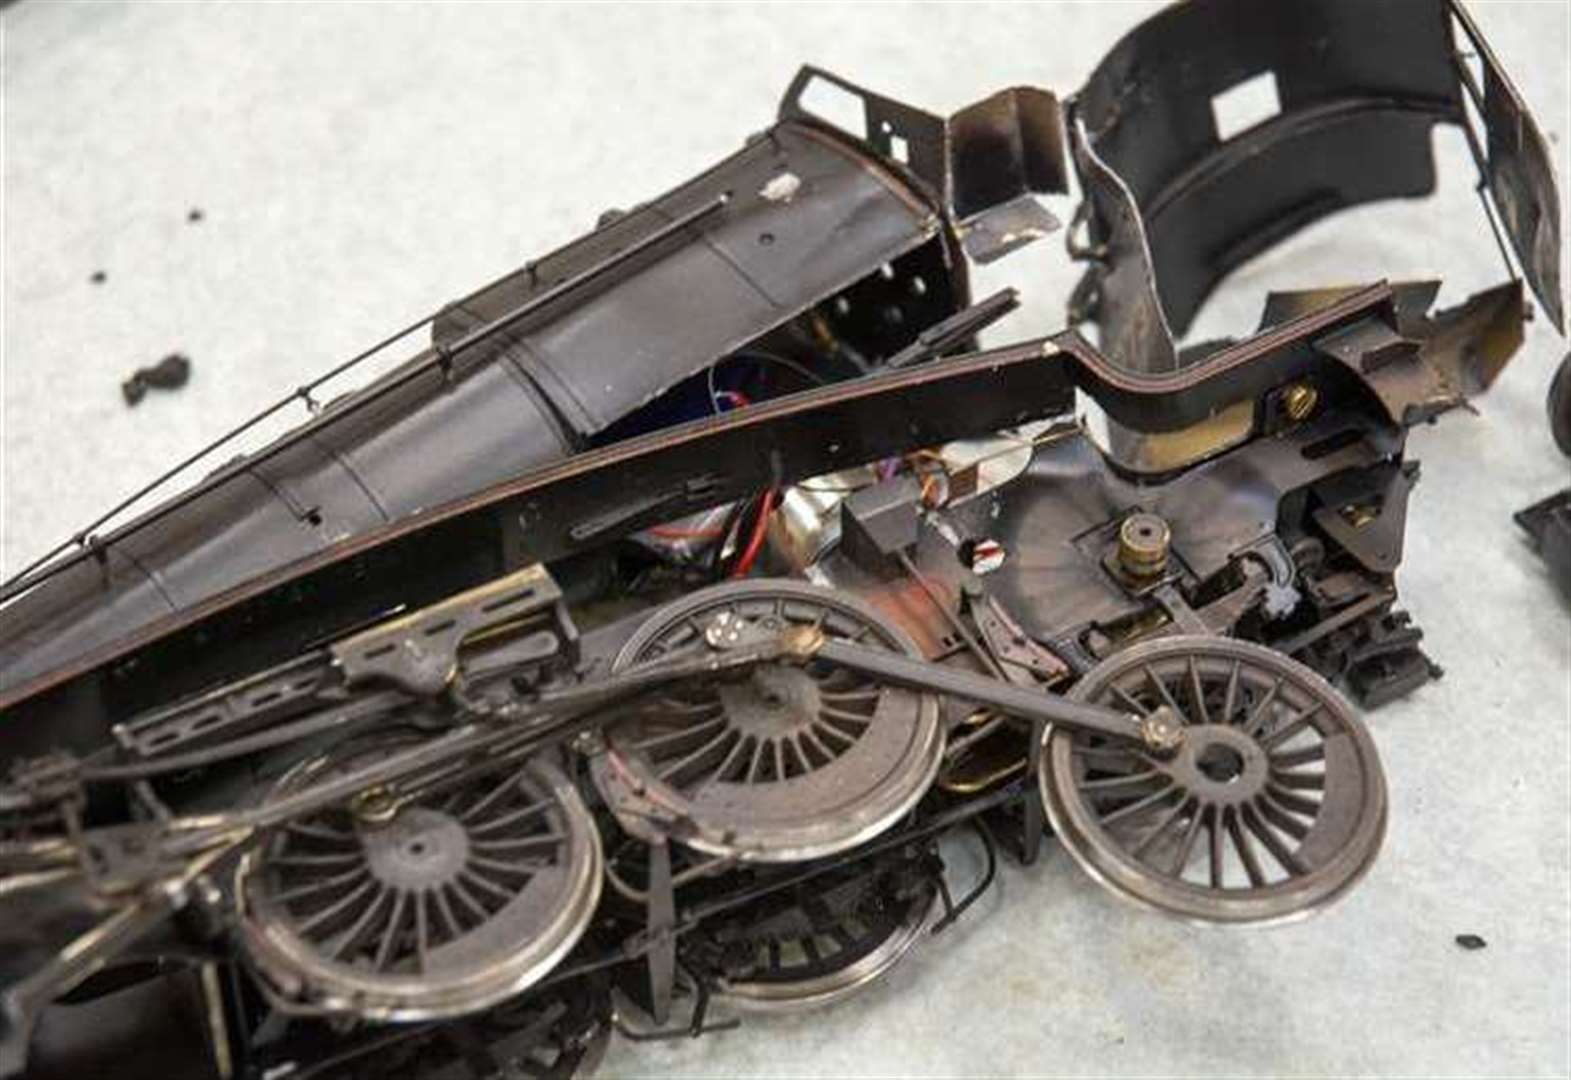 Market Deeping Model Railway Club vandals sentenced to pay £500 compensation